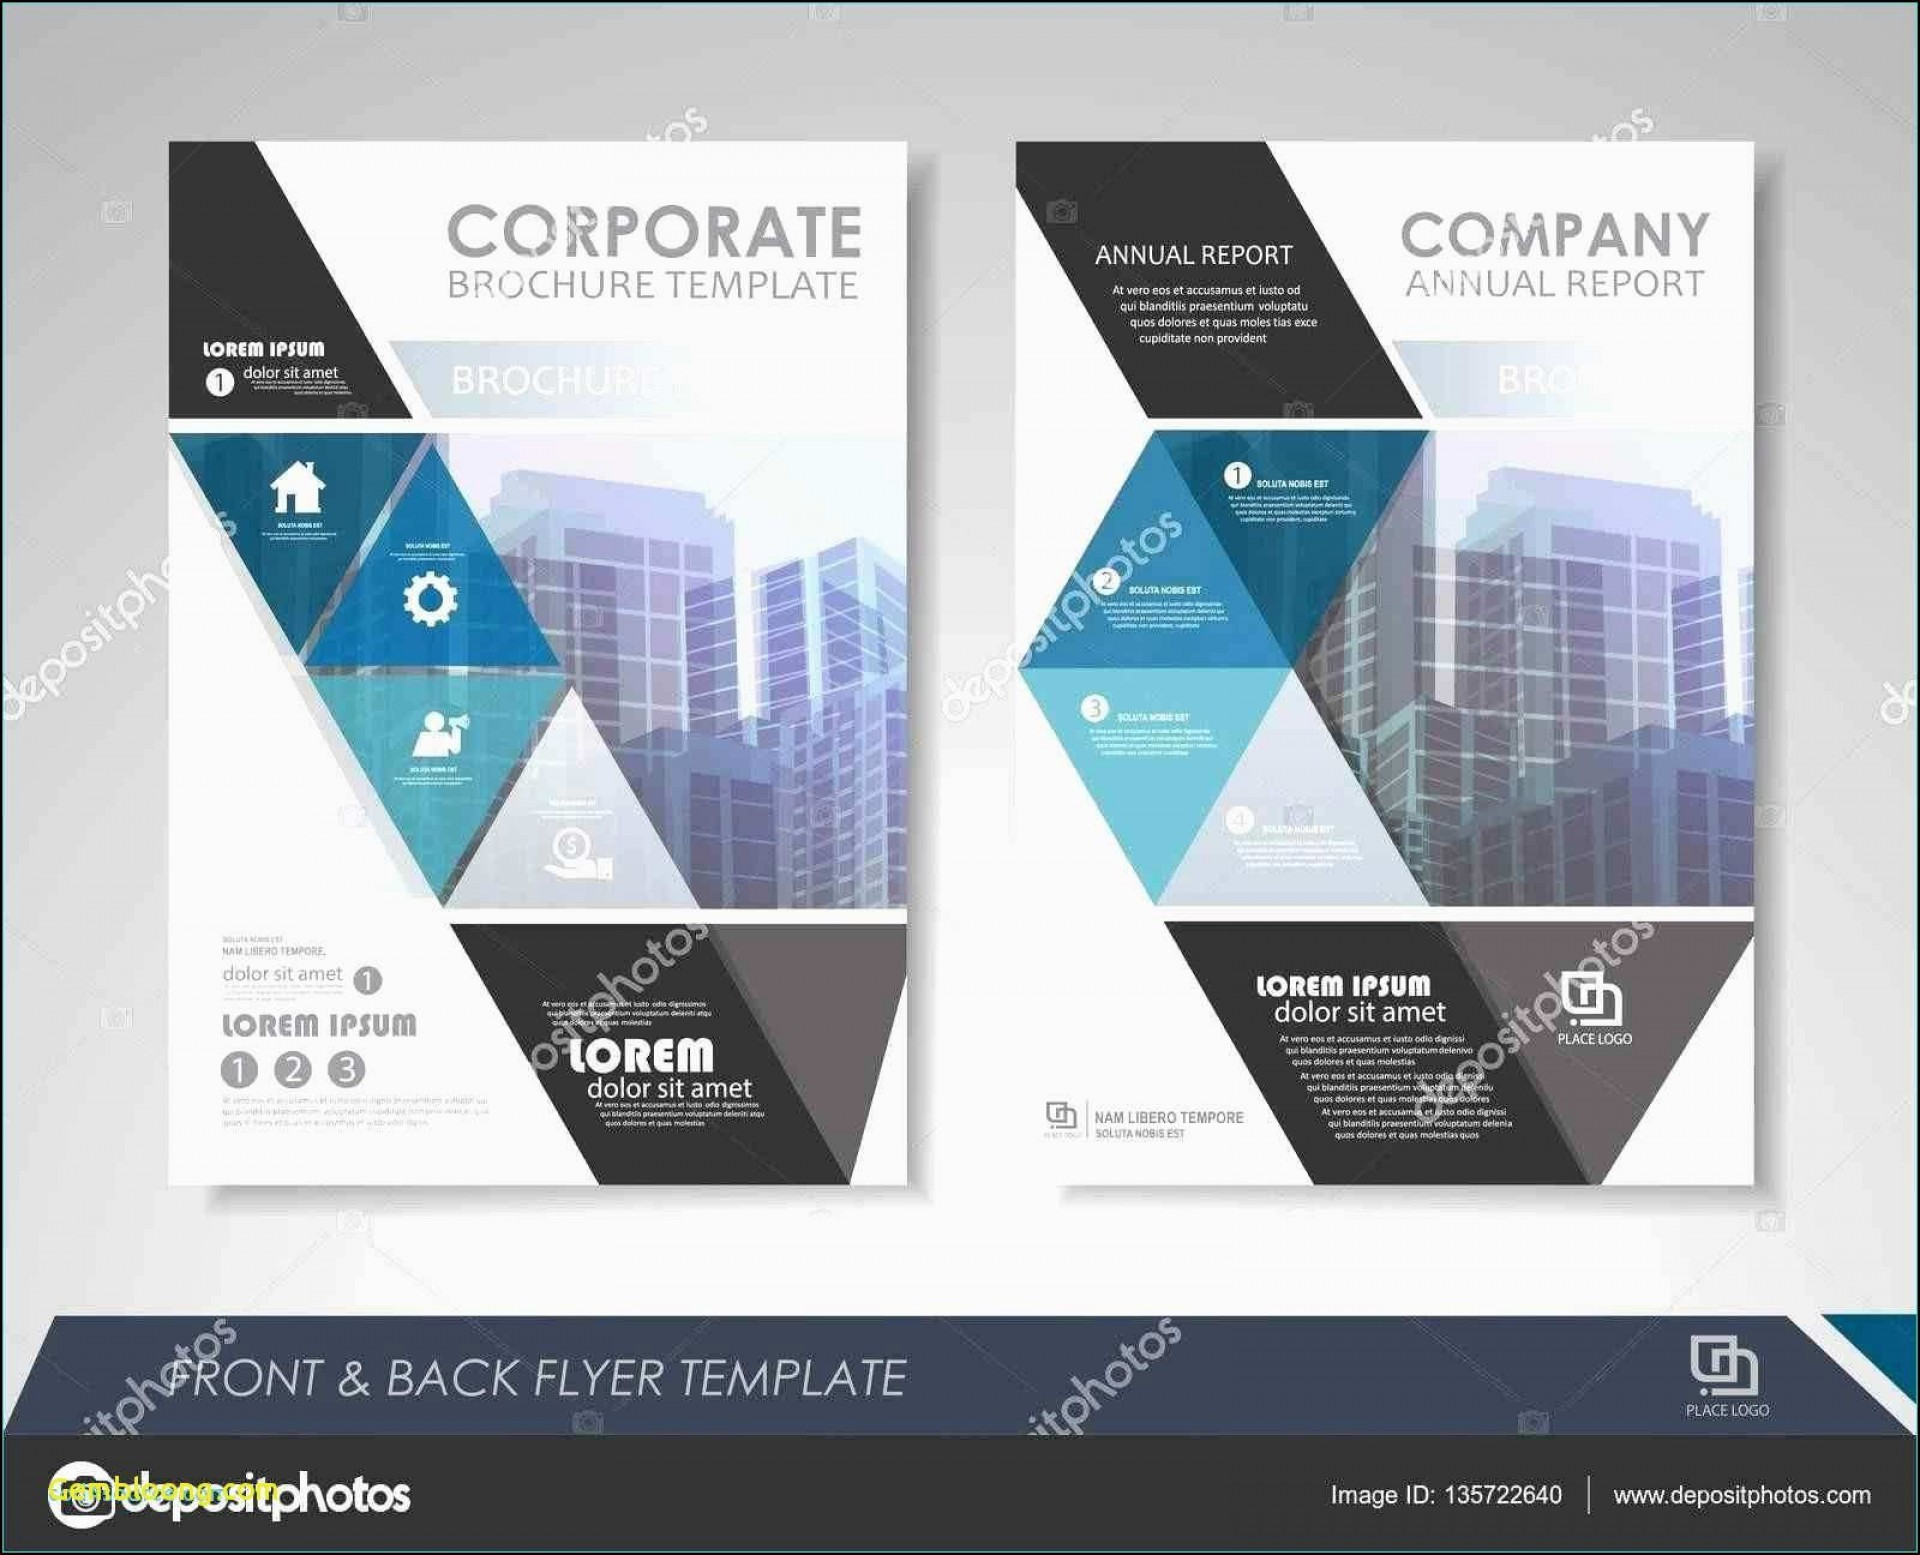 003 Exceptional Brochure Template Free Download Picture  Microsoft Publisher Corporate Psd For Adobe Illustrator1920